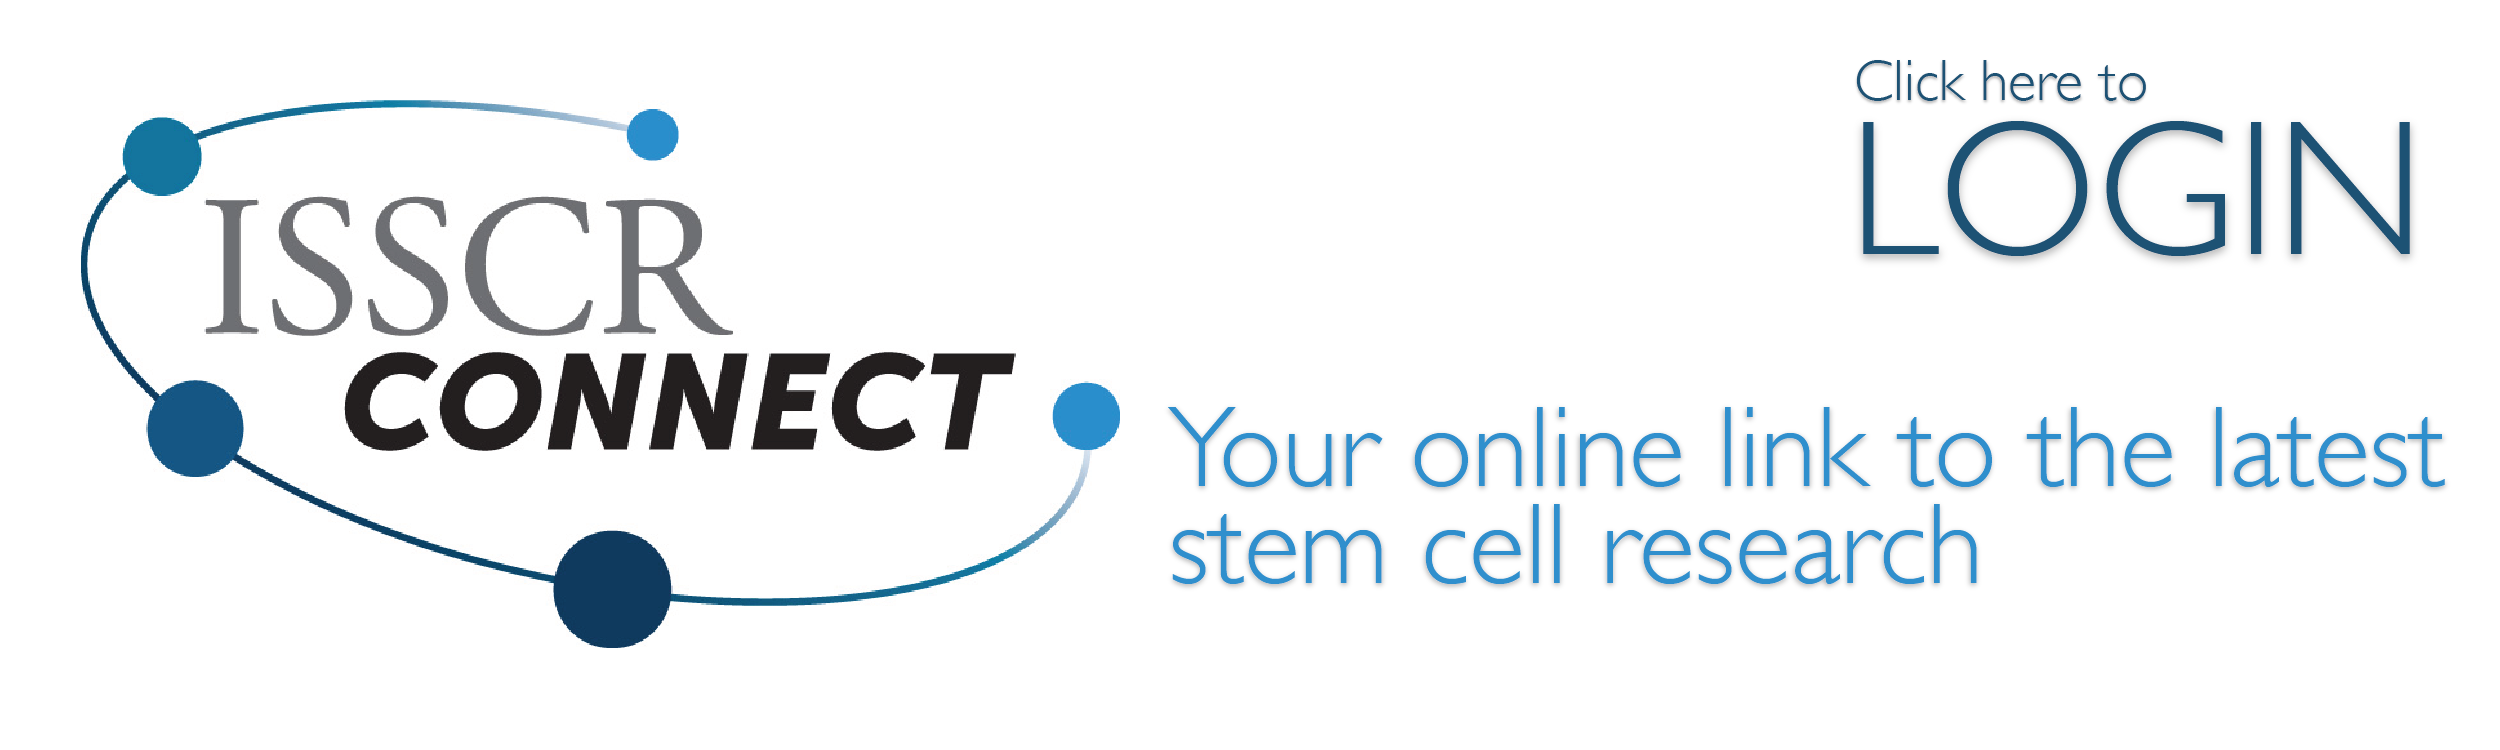 Login to ISSCR Connect